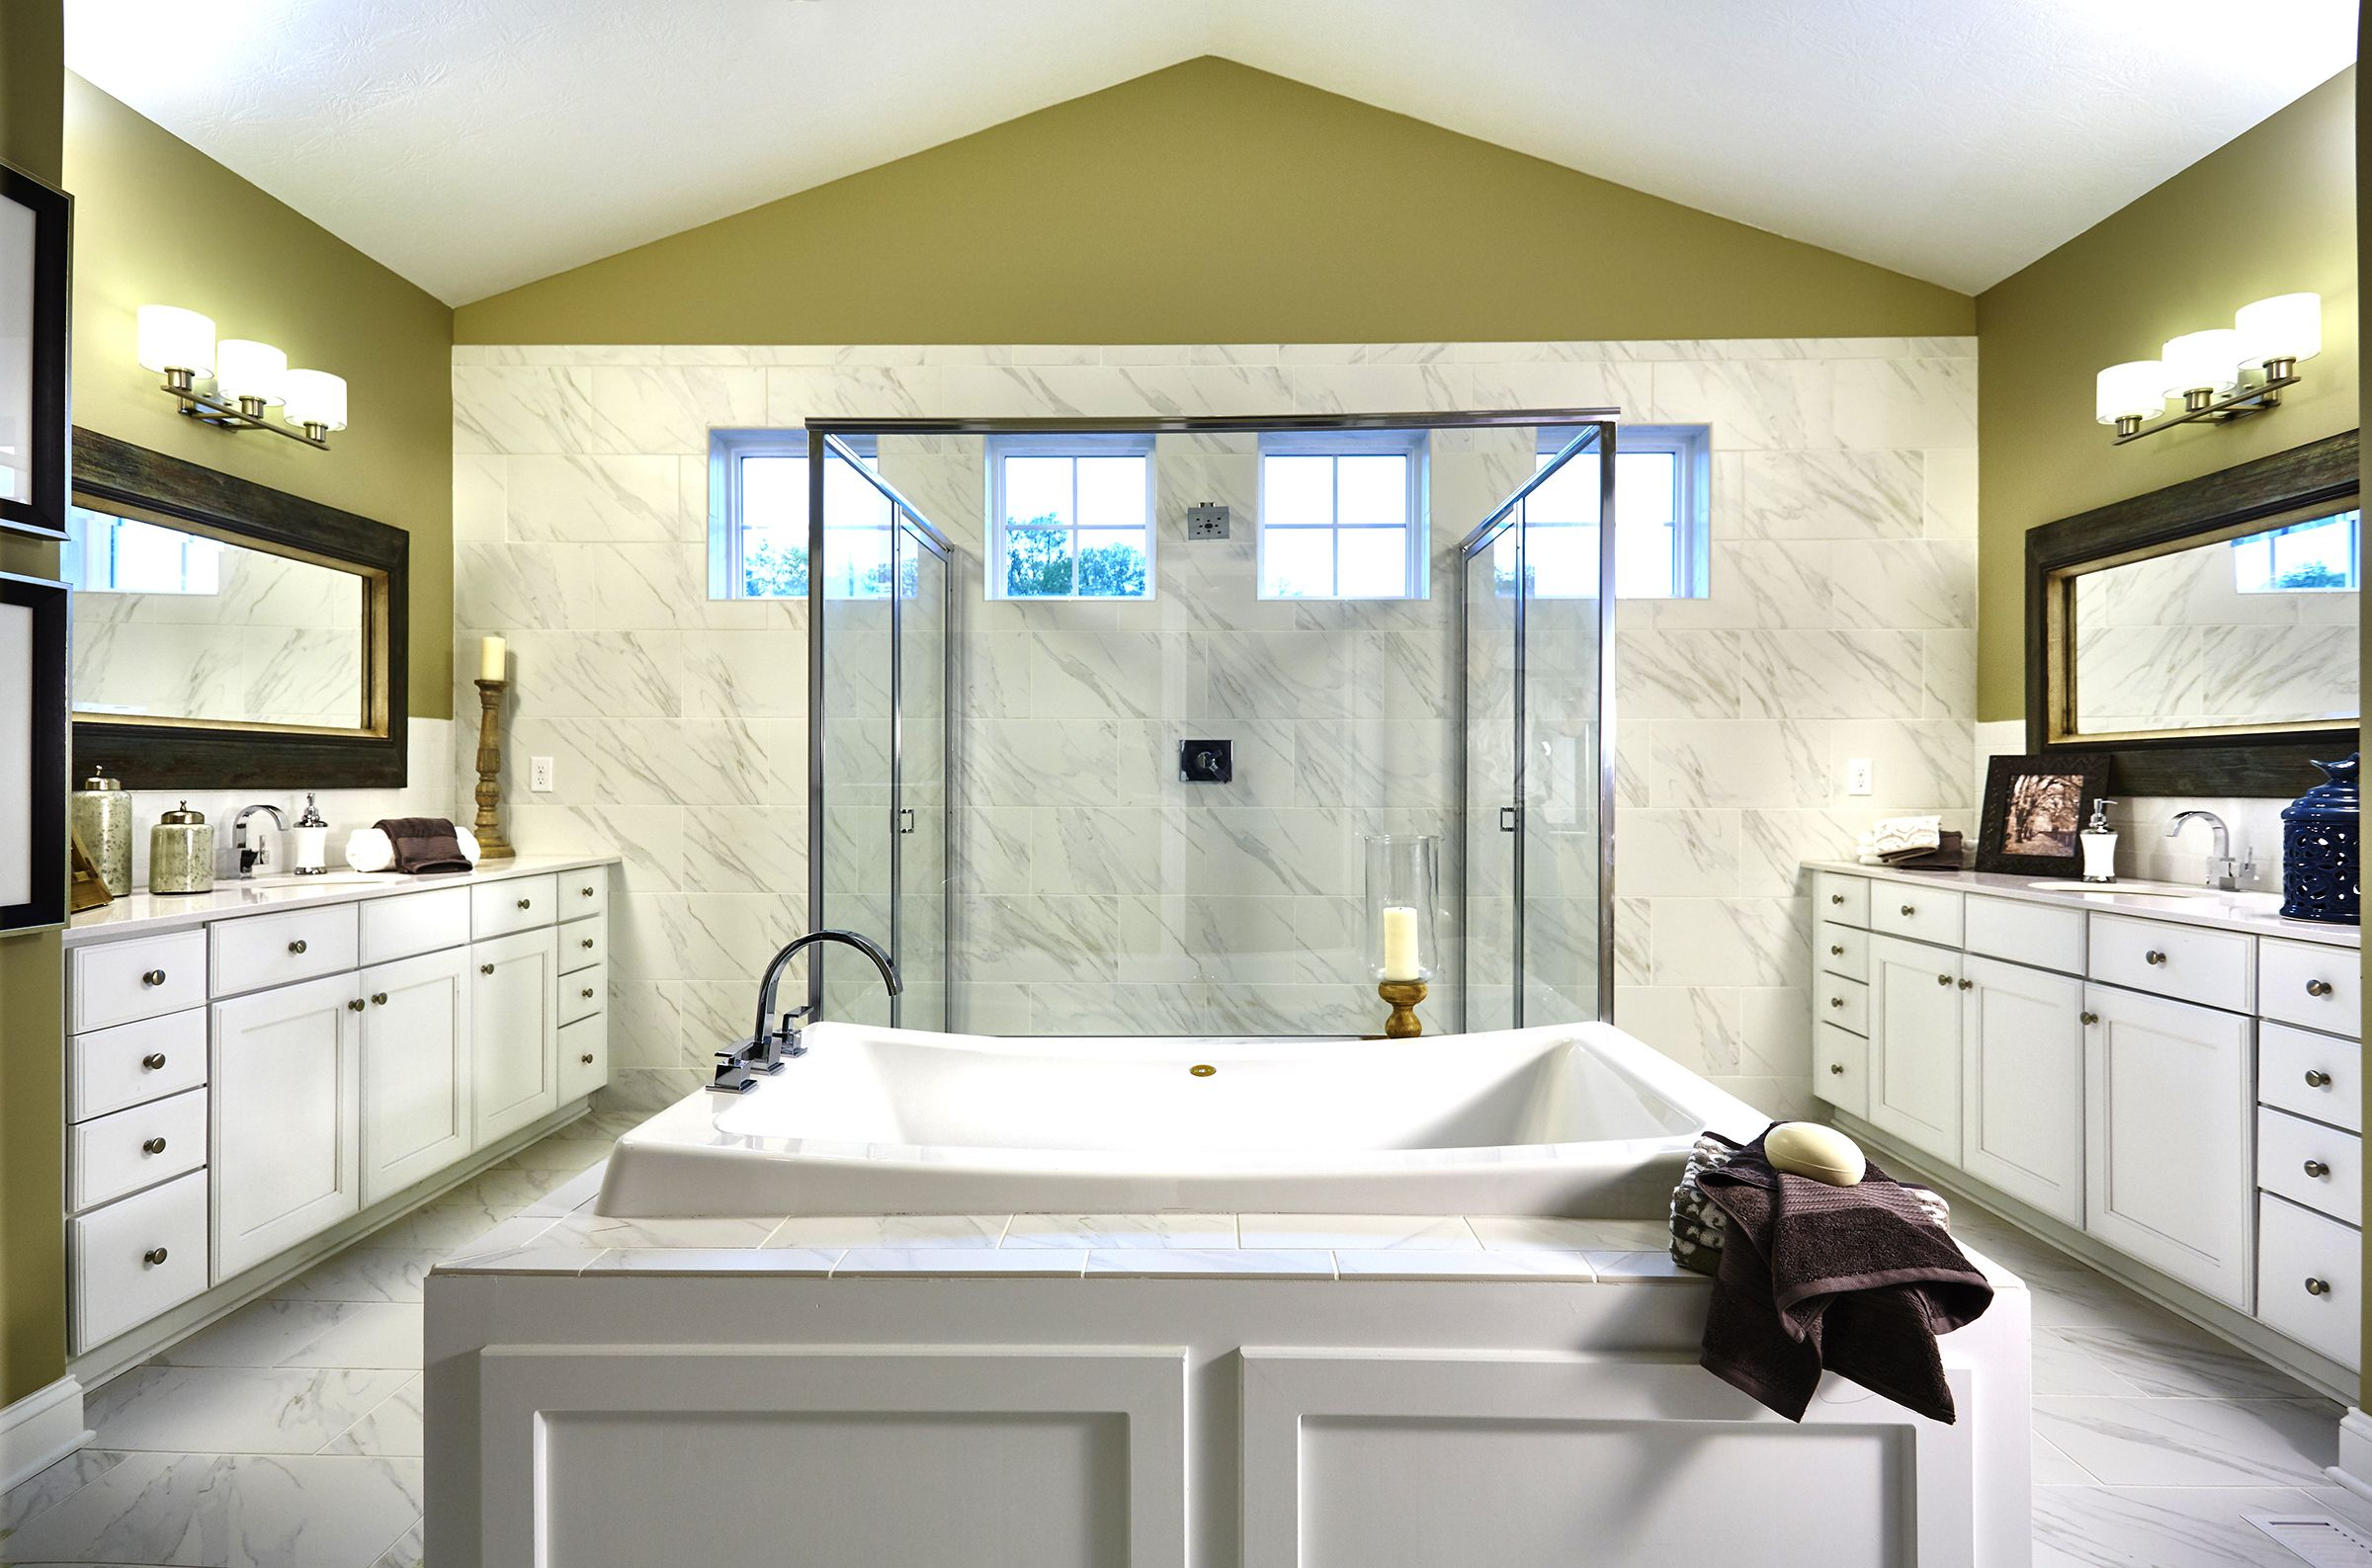 Nearest Bathroom Brilliant Bathroom Pictures  Custom Bathrooms Photo Gallery  Schumacher . Decorating Design